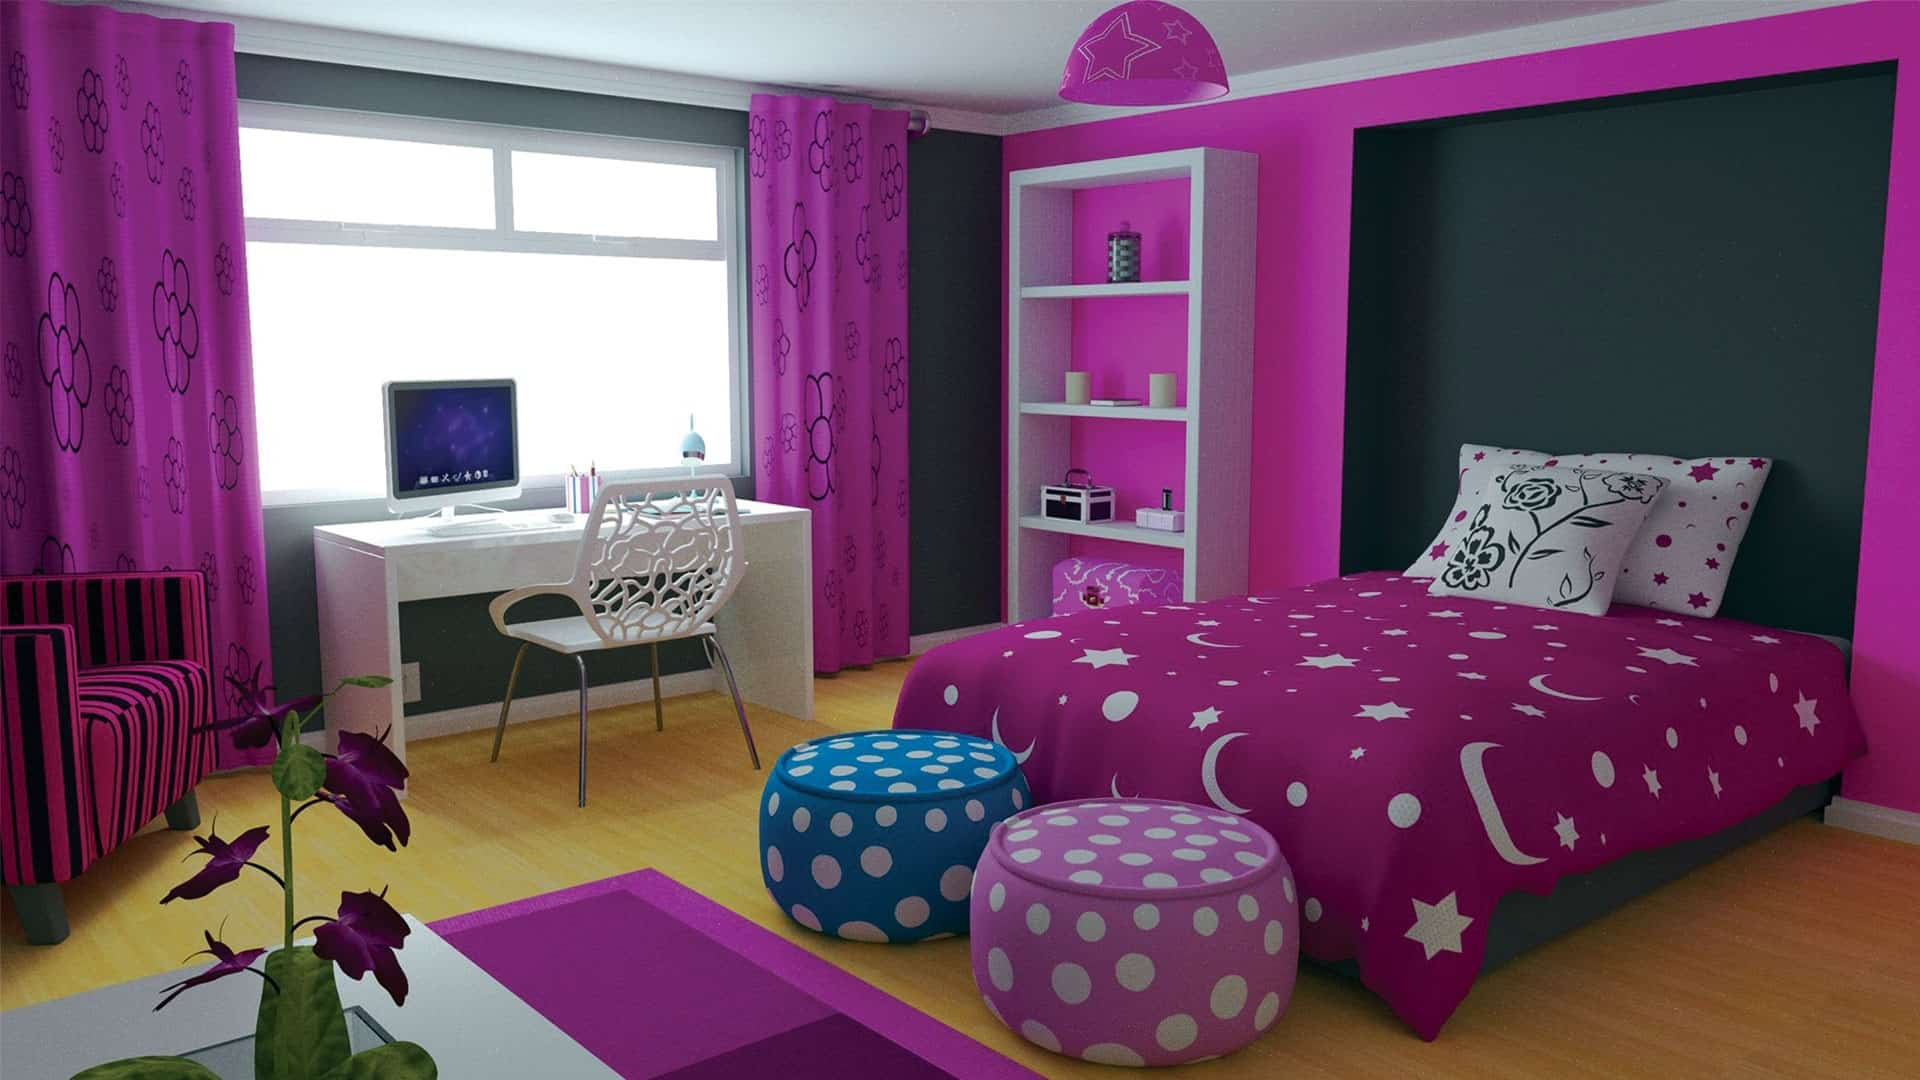 Home decor trends 2017 purple teen room - Girls room ideas ...